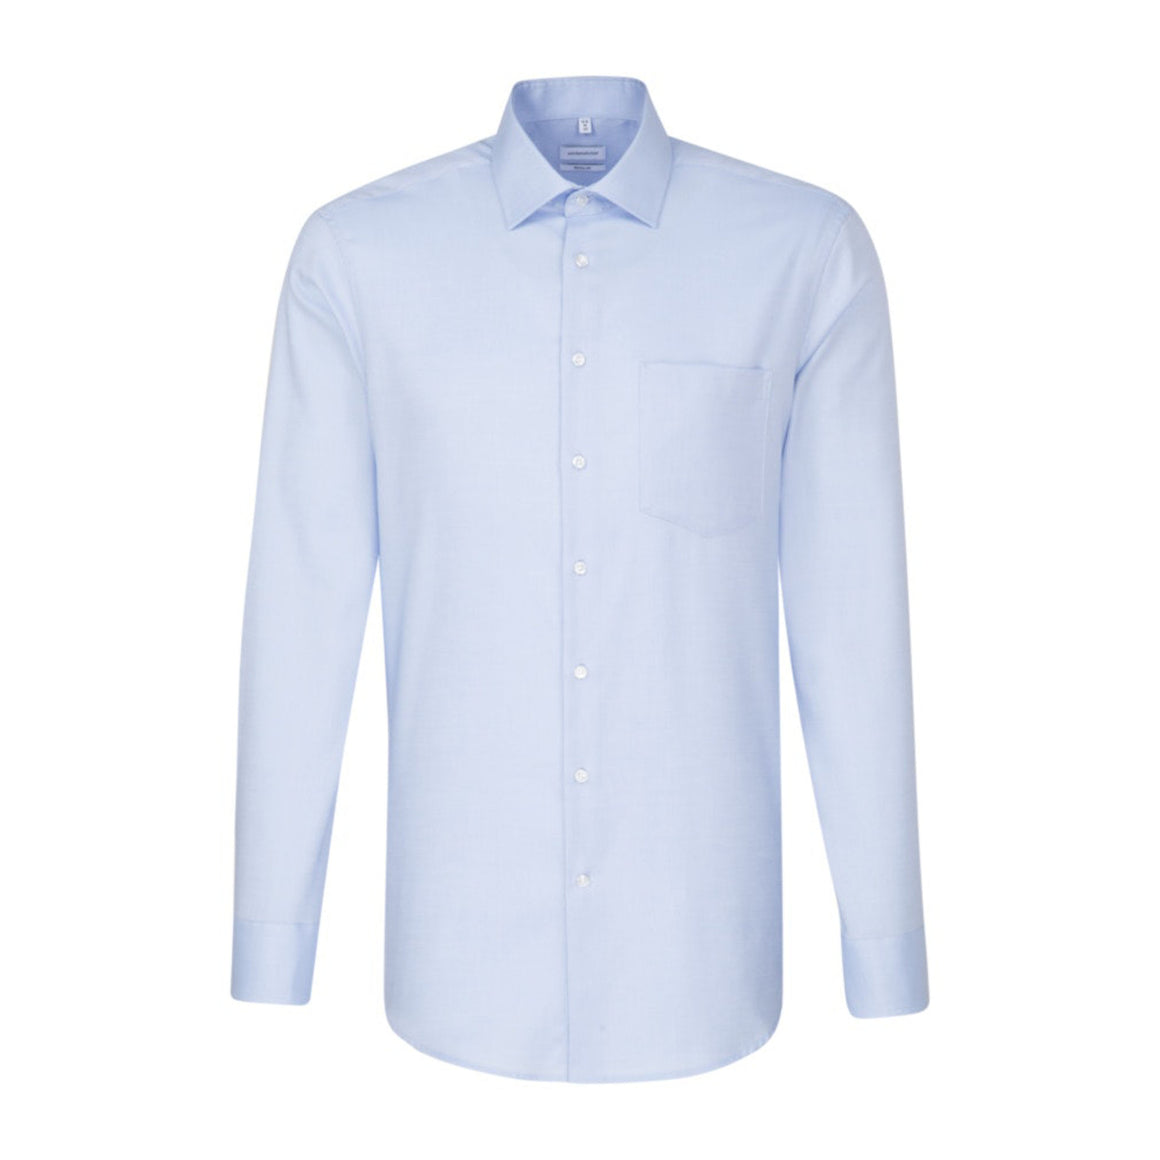 Plain Surface Structure Shirt for Men in Sky